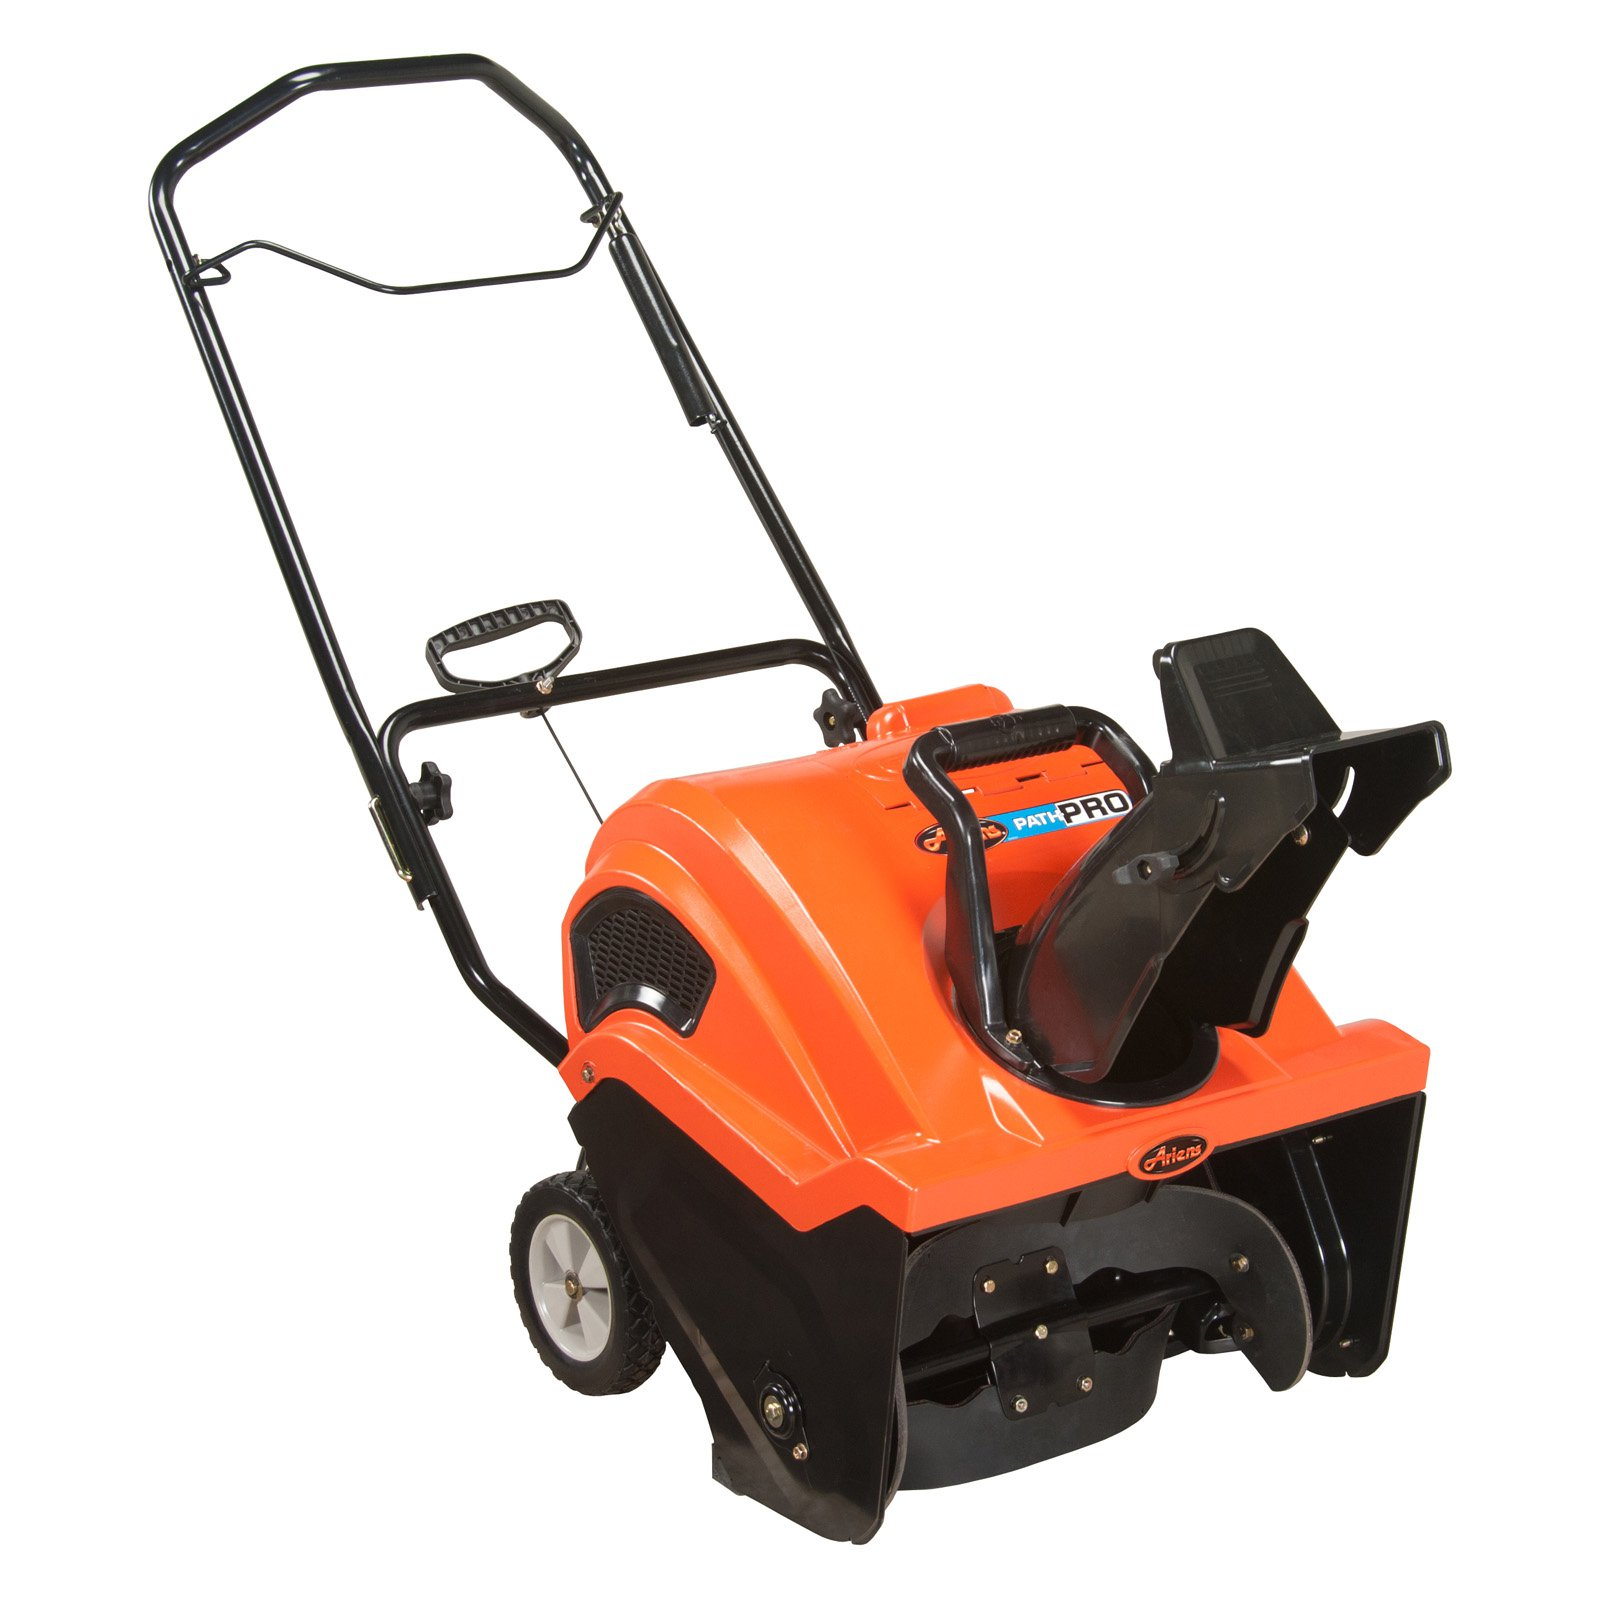 Ariens Path-Pro 21 in.1-Stage Snow Blower